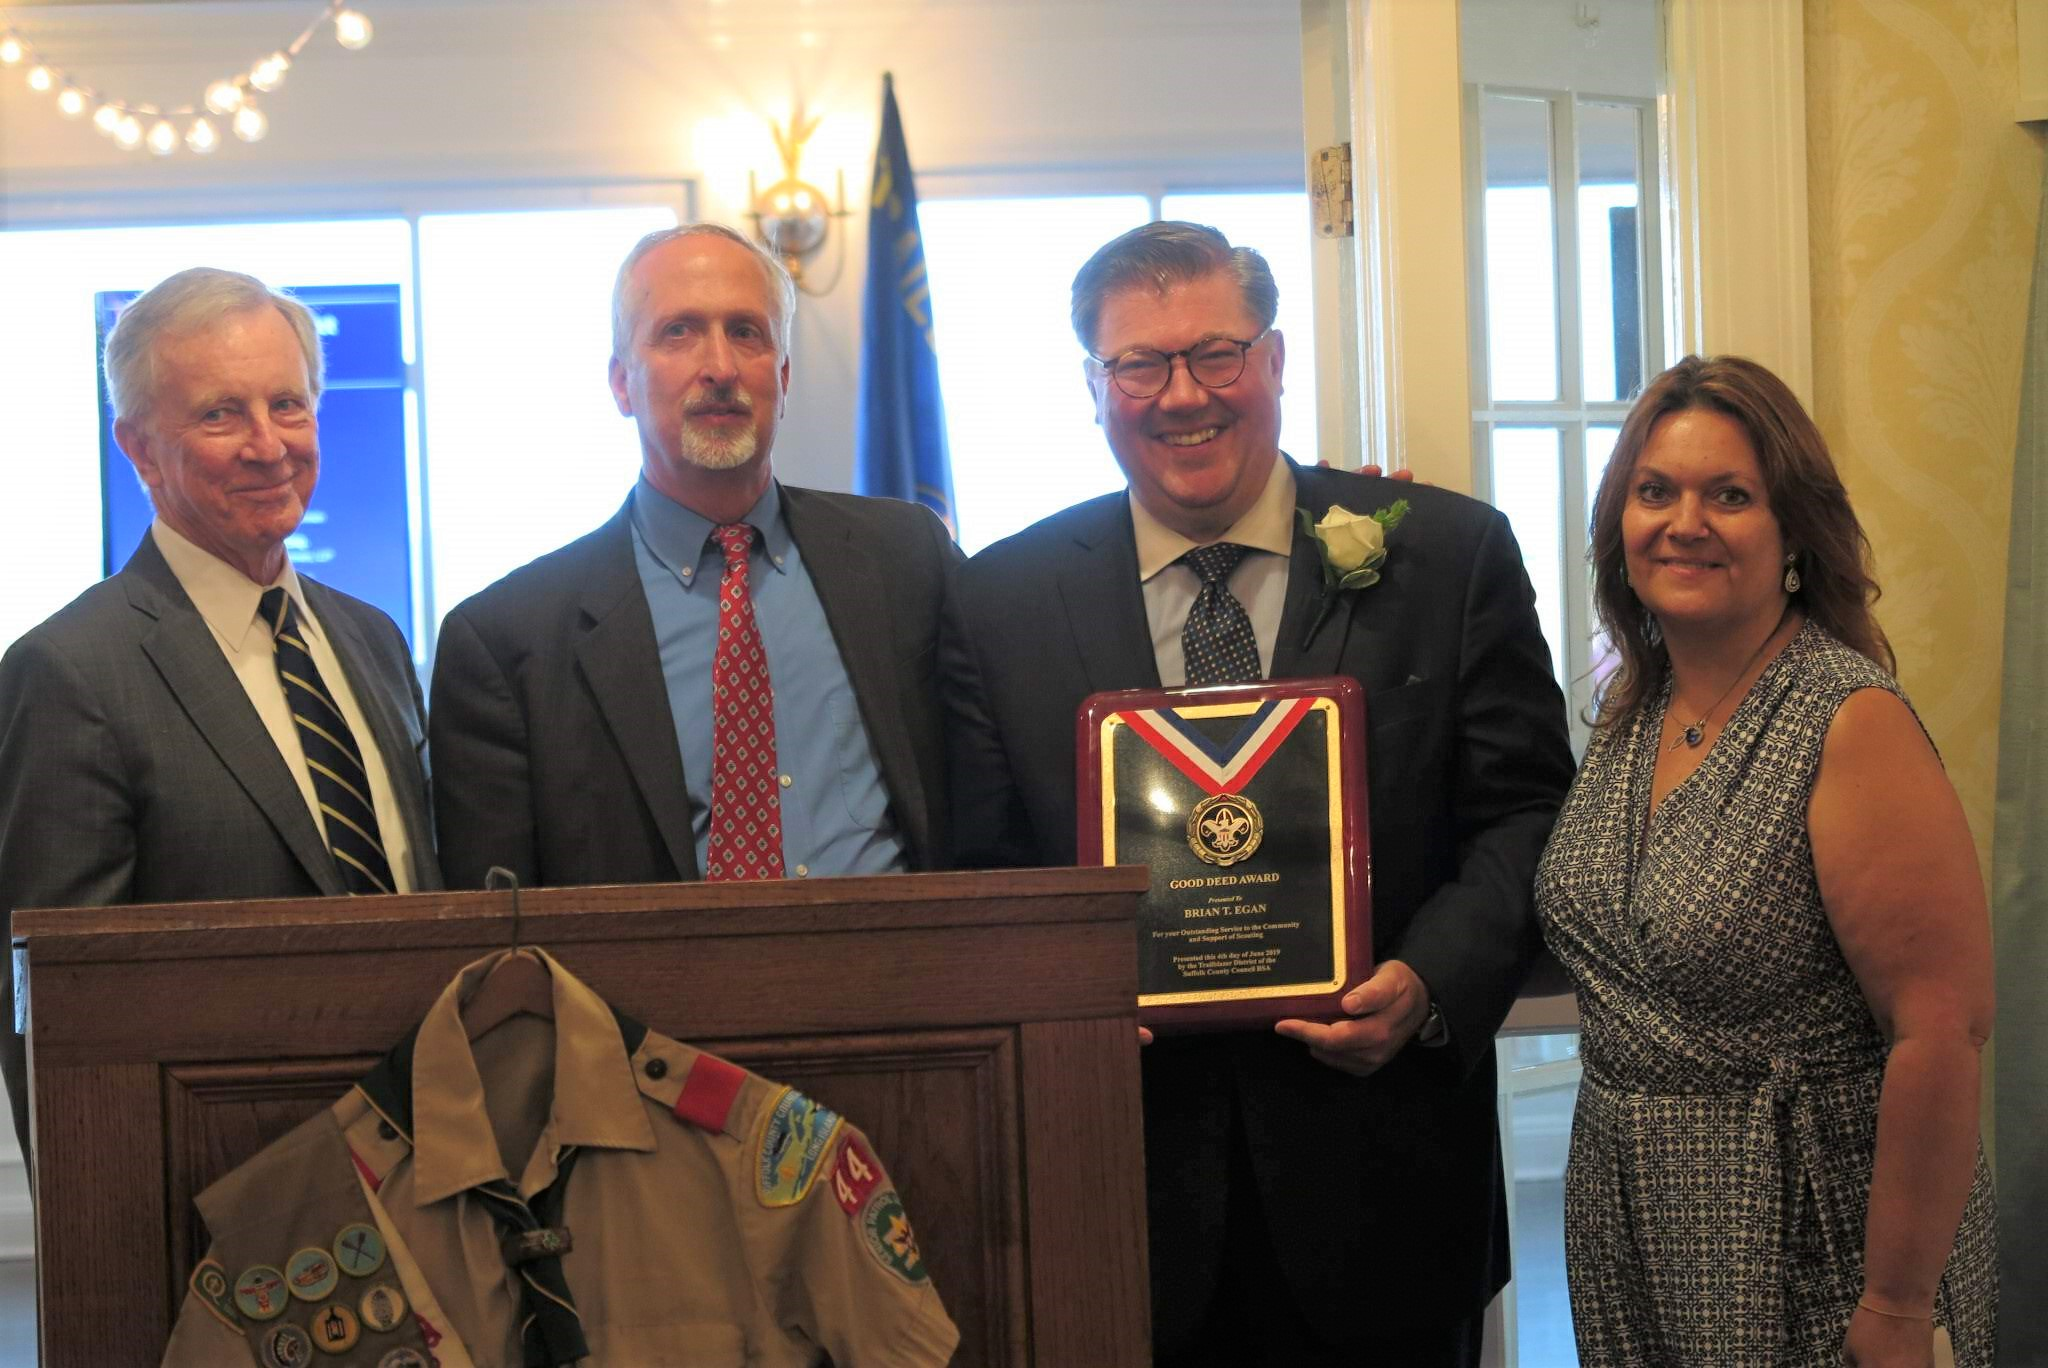 Egan receives 36th Annual Good Deed Award from Boy Scouts